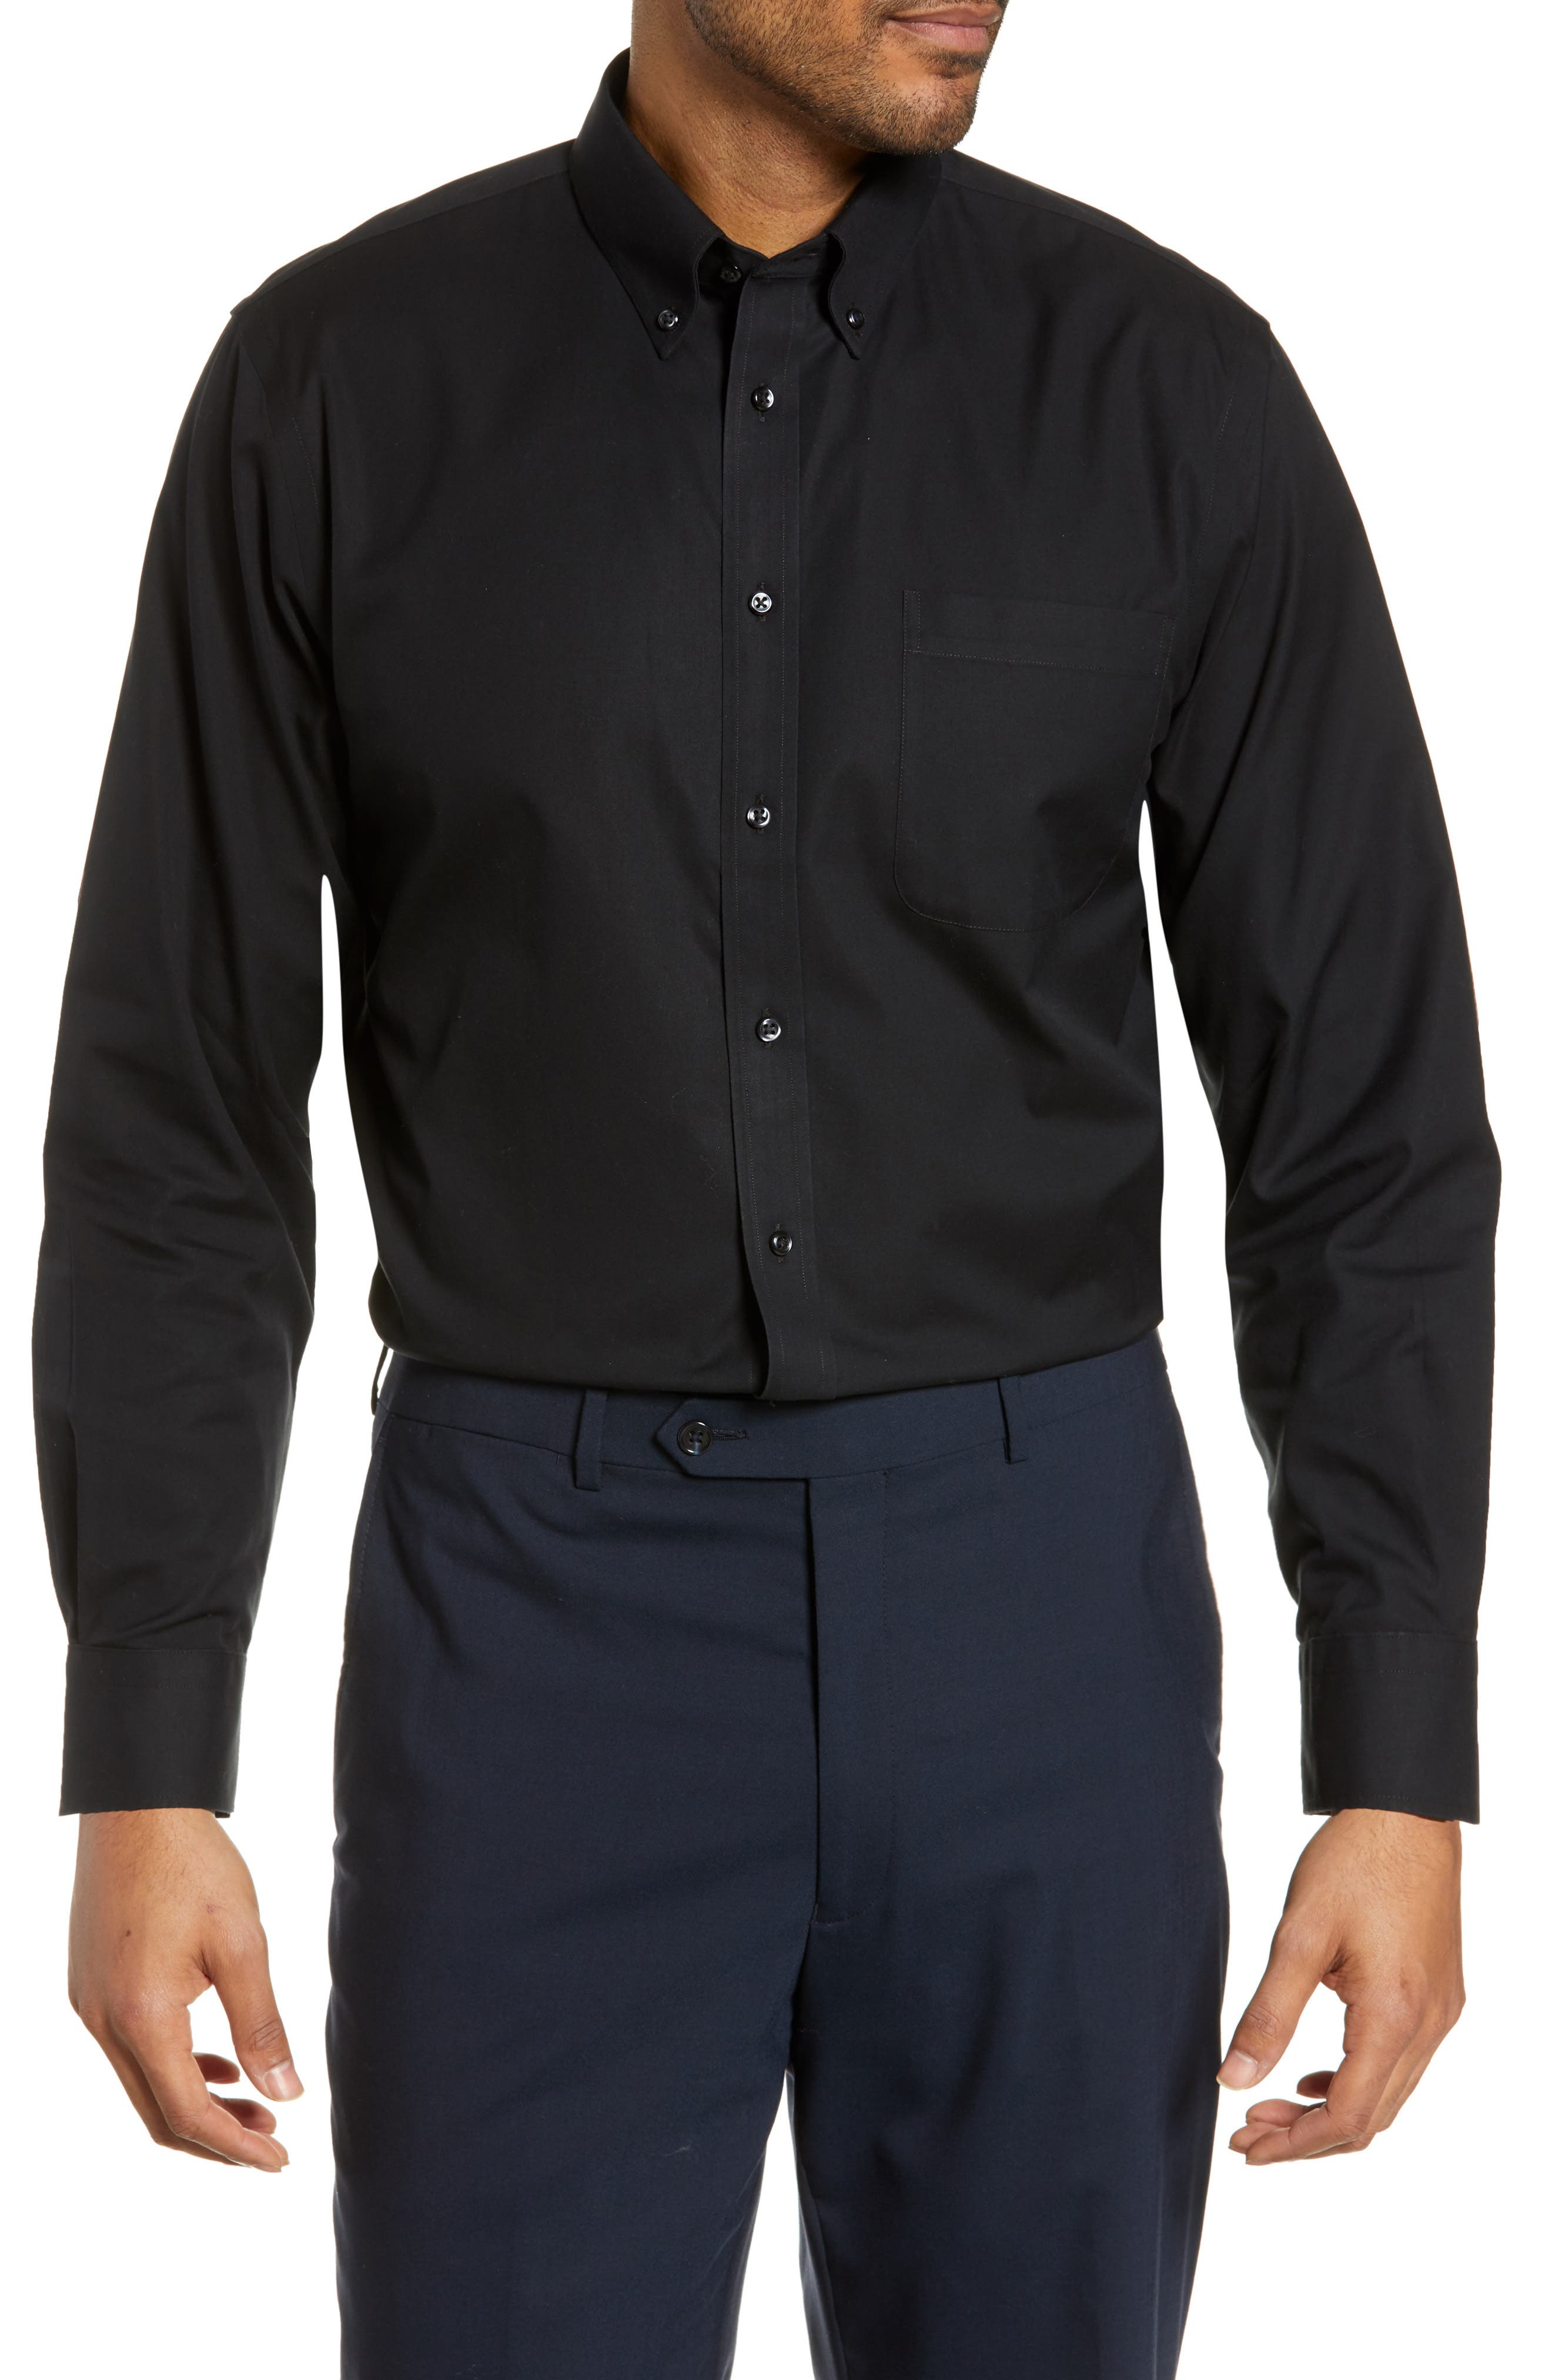 NORDSTROM MEN'S SHOP, Smartcare<sup>™</sup> Traditional Fit Pinpoint Dress Shirt, Main thumbnail 1, color, BLACK ROCK